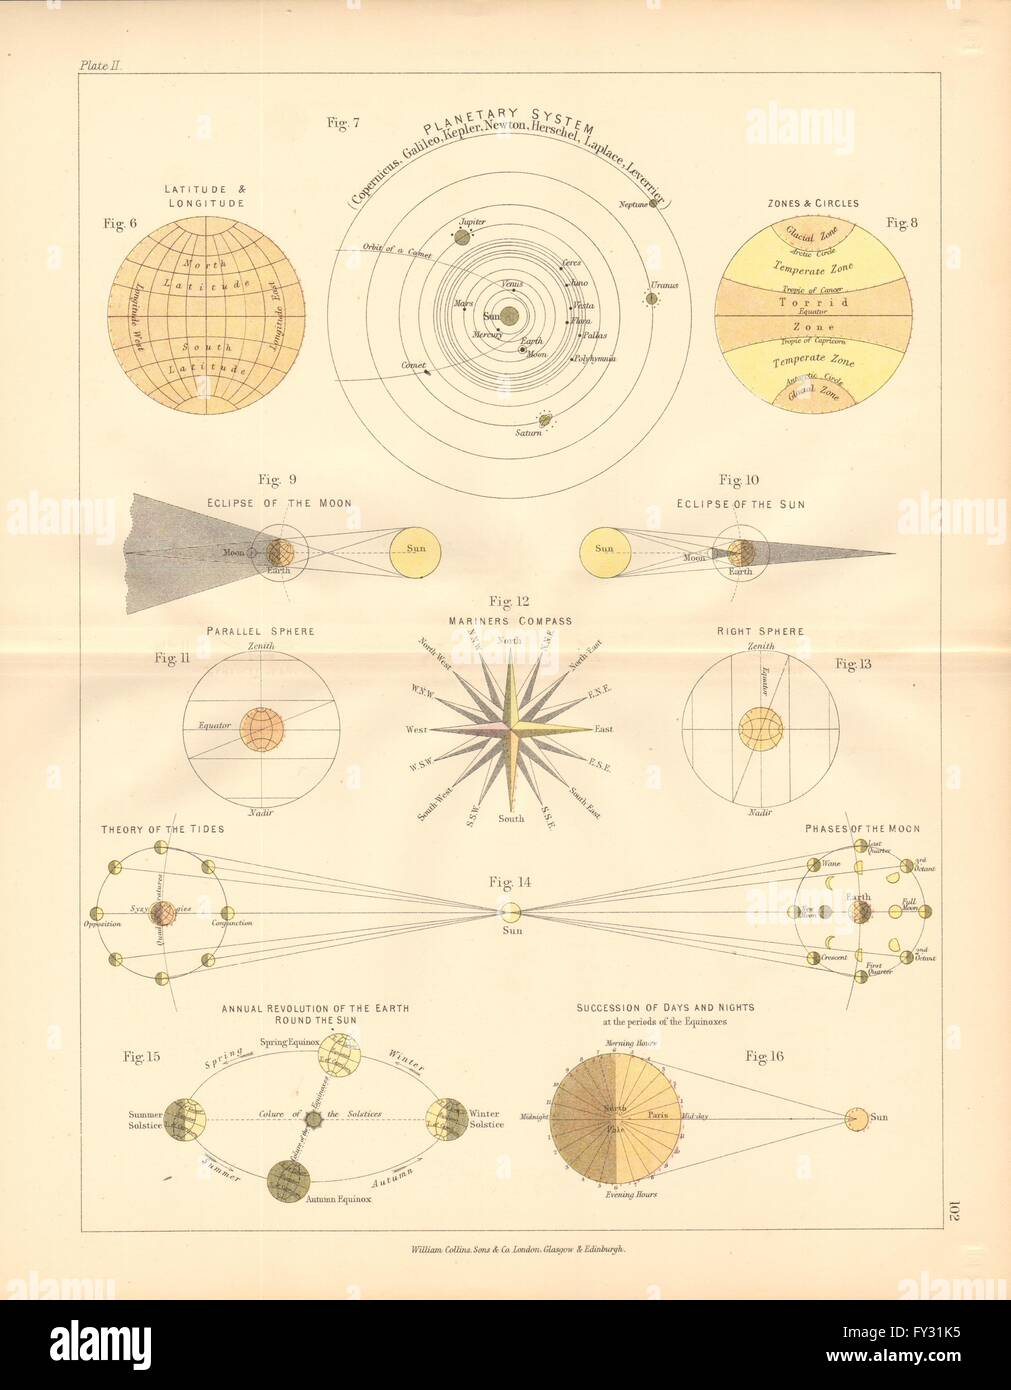 Moon Phase Lunar Eclipse Diagram Schematic Diagrams Phases Star Chart Solar System Eclipses Tides Bartholomew